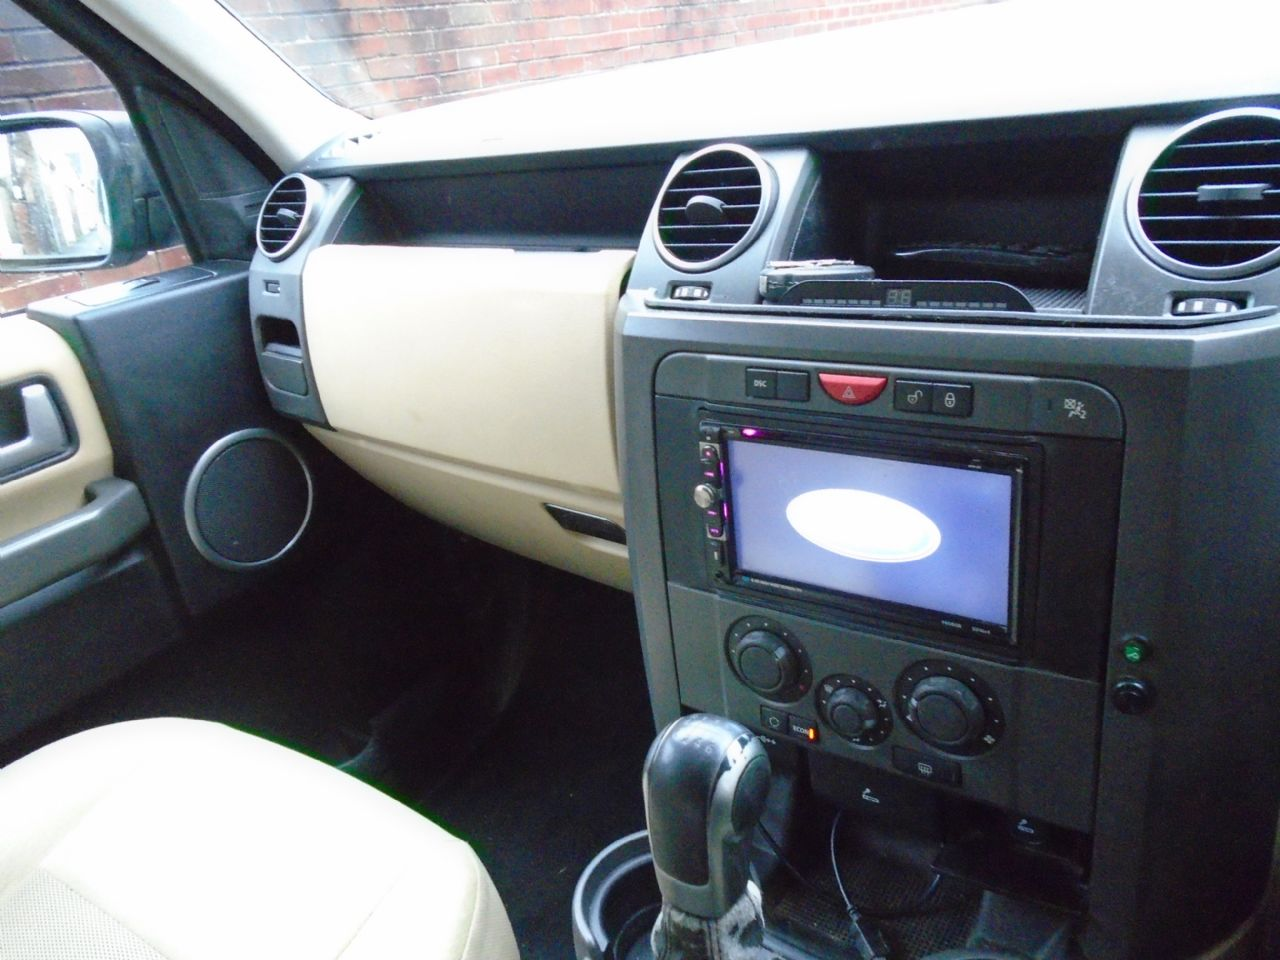 LAND ROVER Discovery 3 TDV6 5 Seat - Picture 6